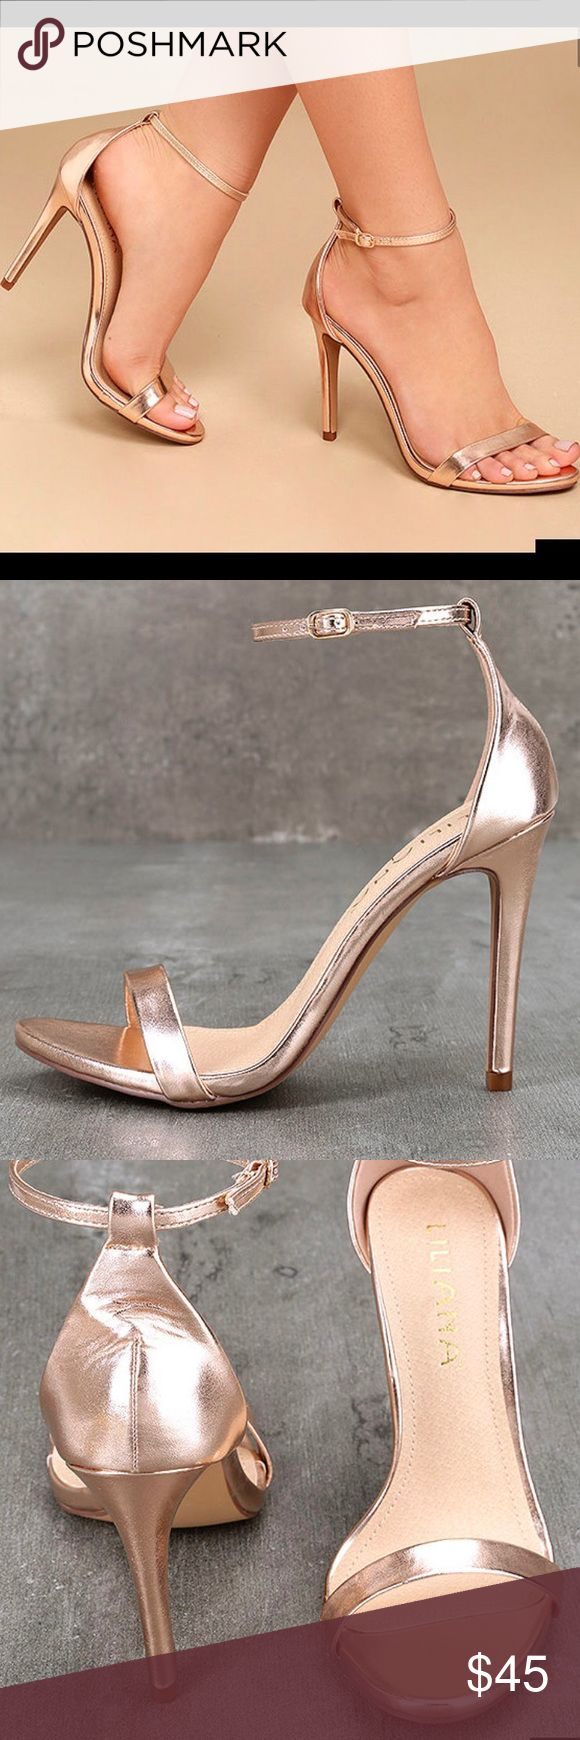 Rose Gold Strappy Heels Brand new in box. Unused. Rose Hold Strappy Heels. Size 6.  Description of Heels in picture. ❌Trades Lulu's Shoes Heels